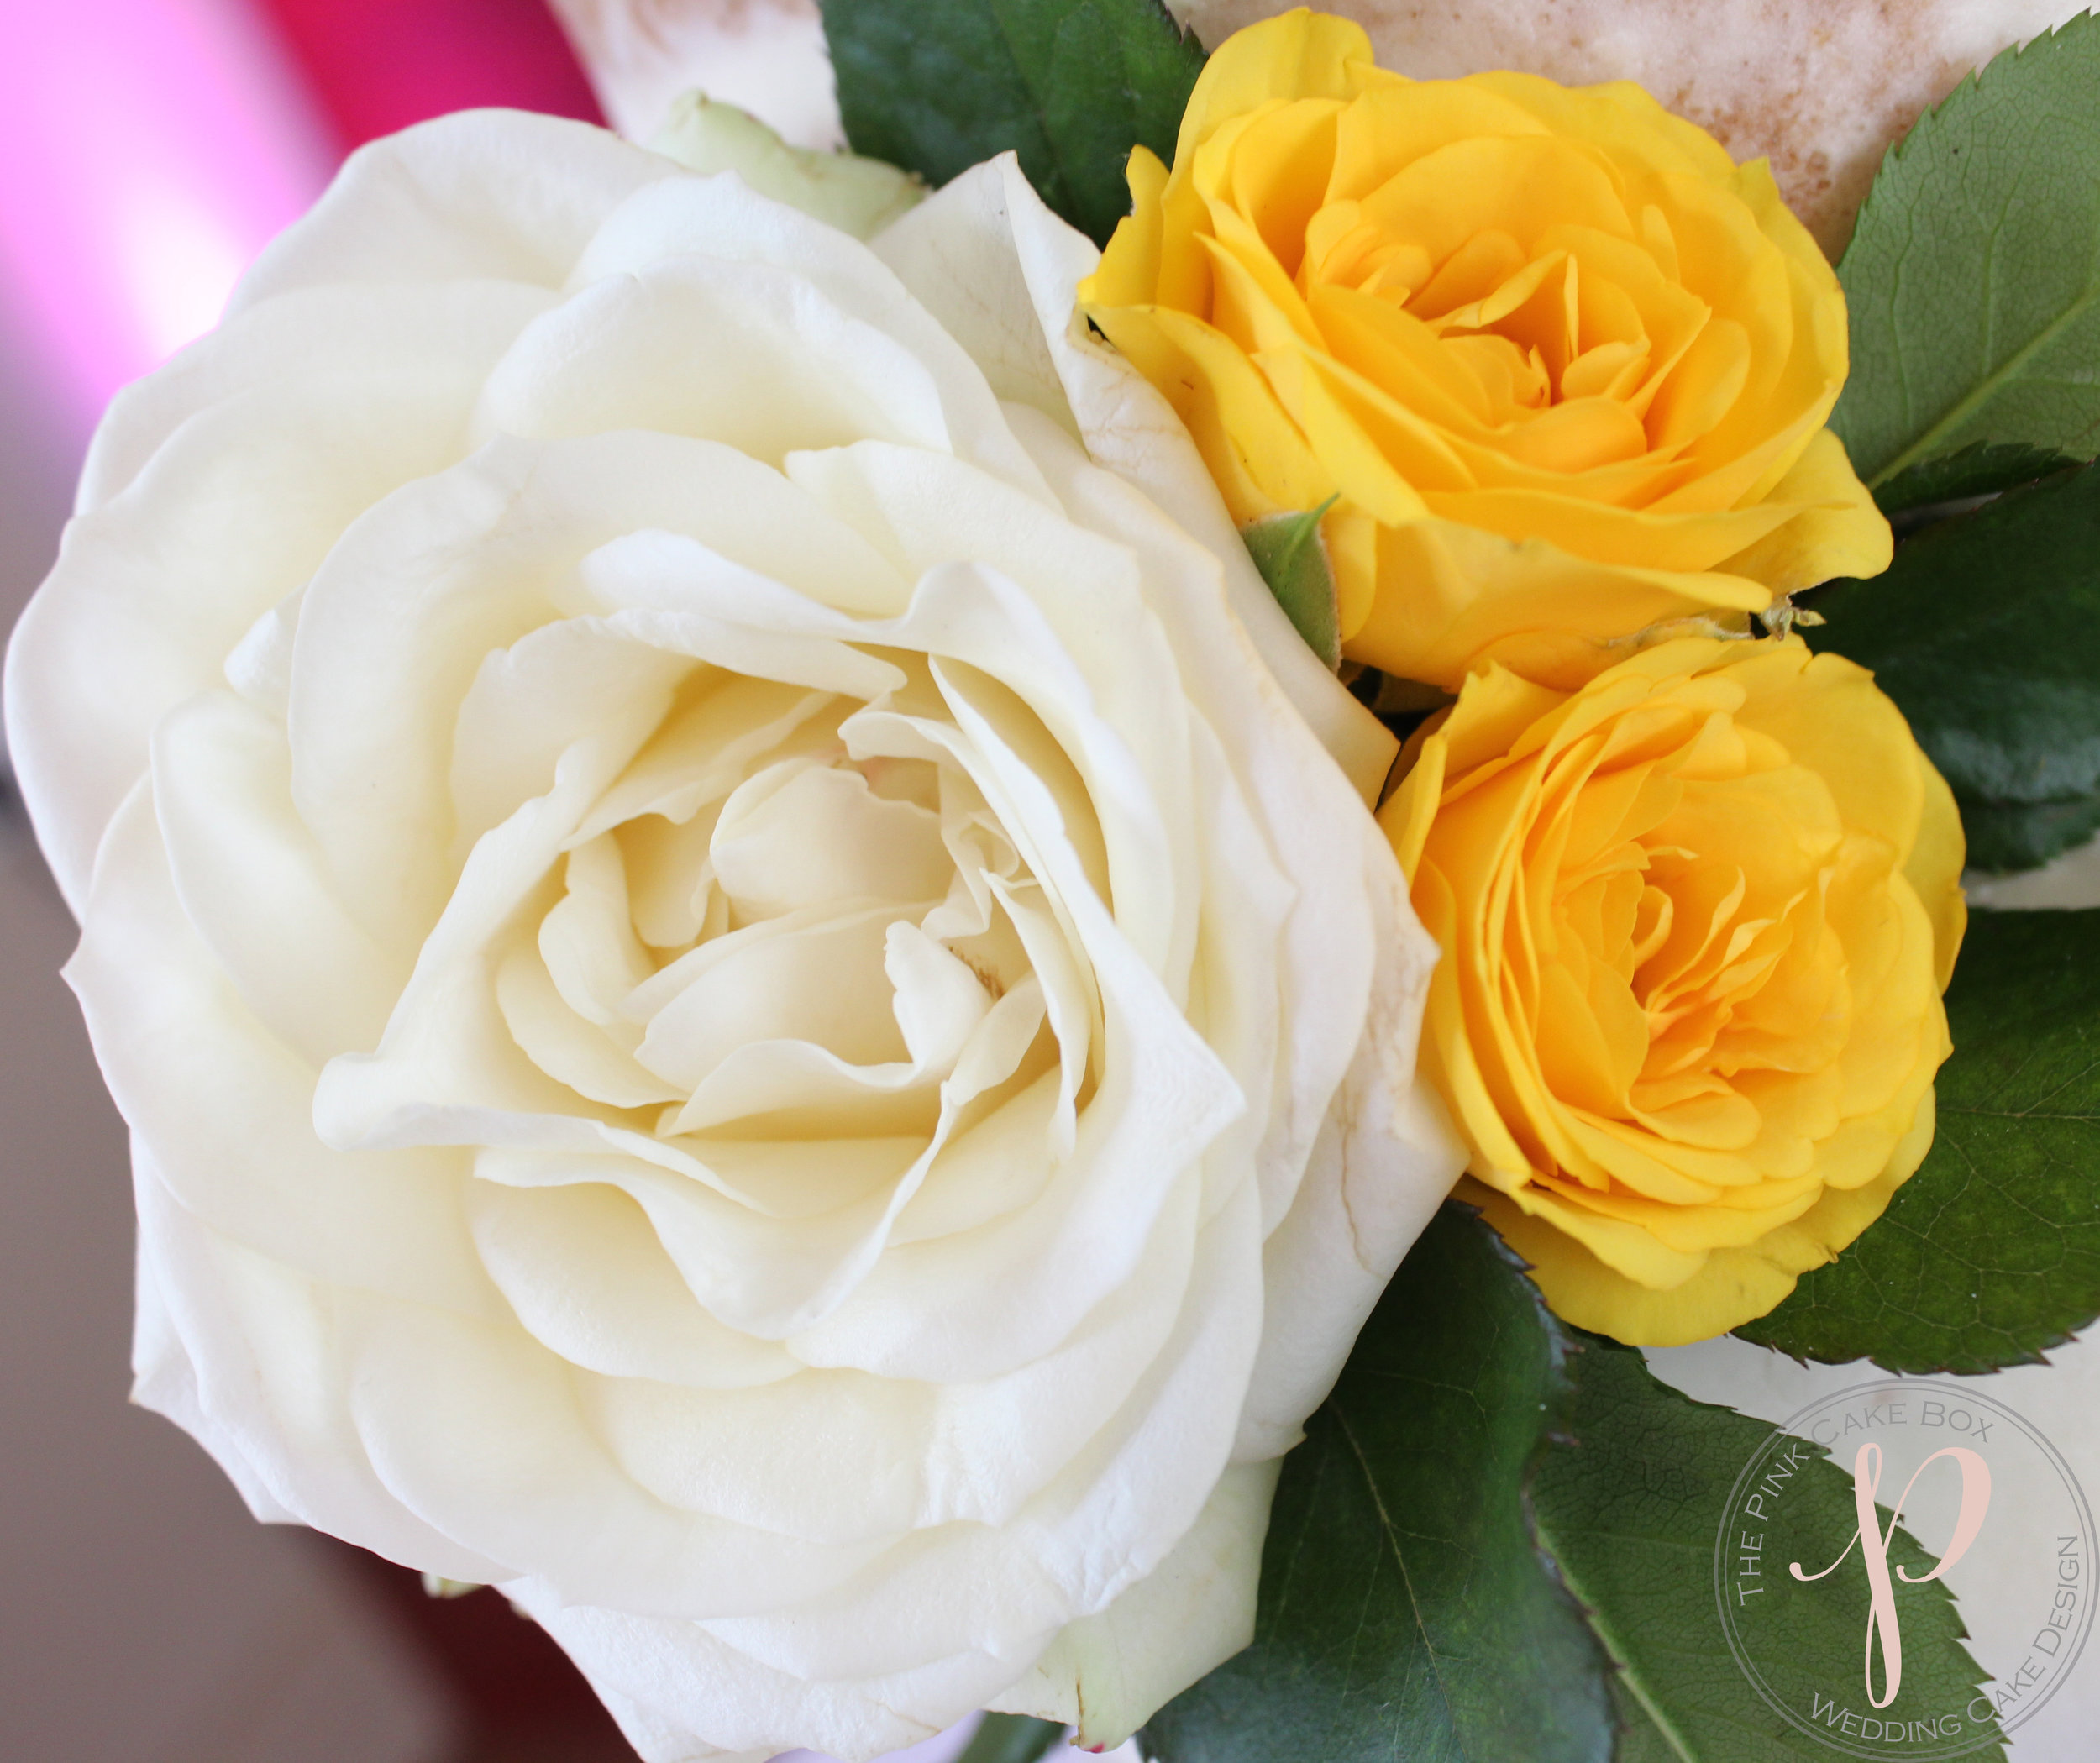 ivory and yellow wedding flowers.jpg